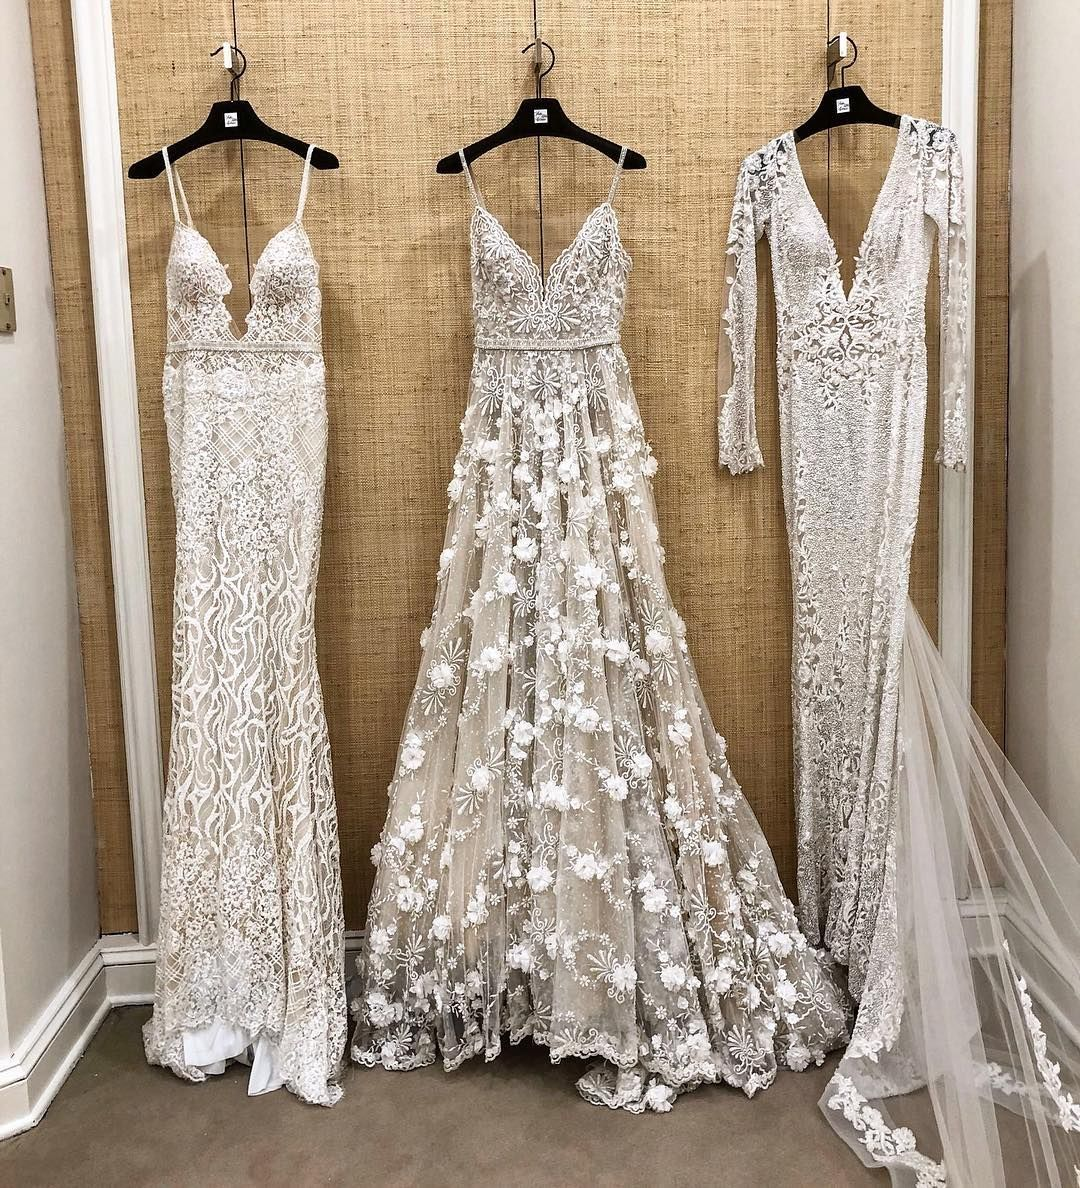 Saks Wedding Gowns: How Gorgeous Which One Do You Like Better? Gowns By @berta